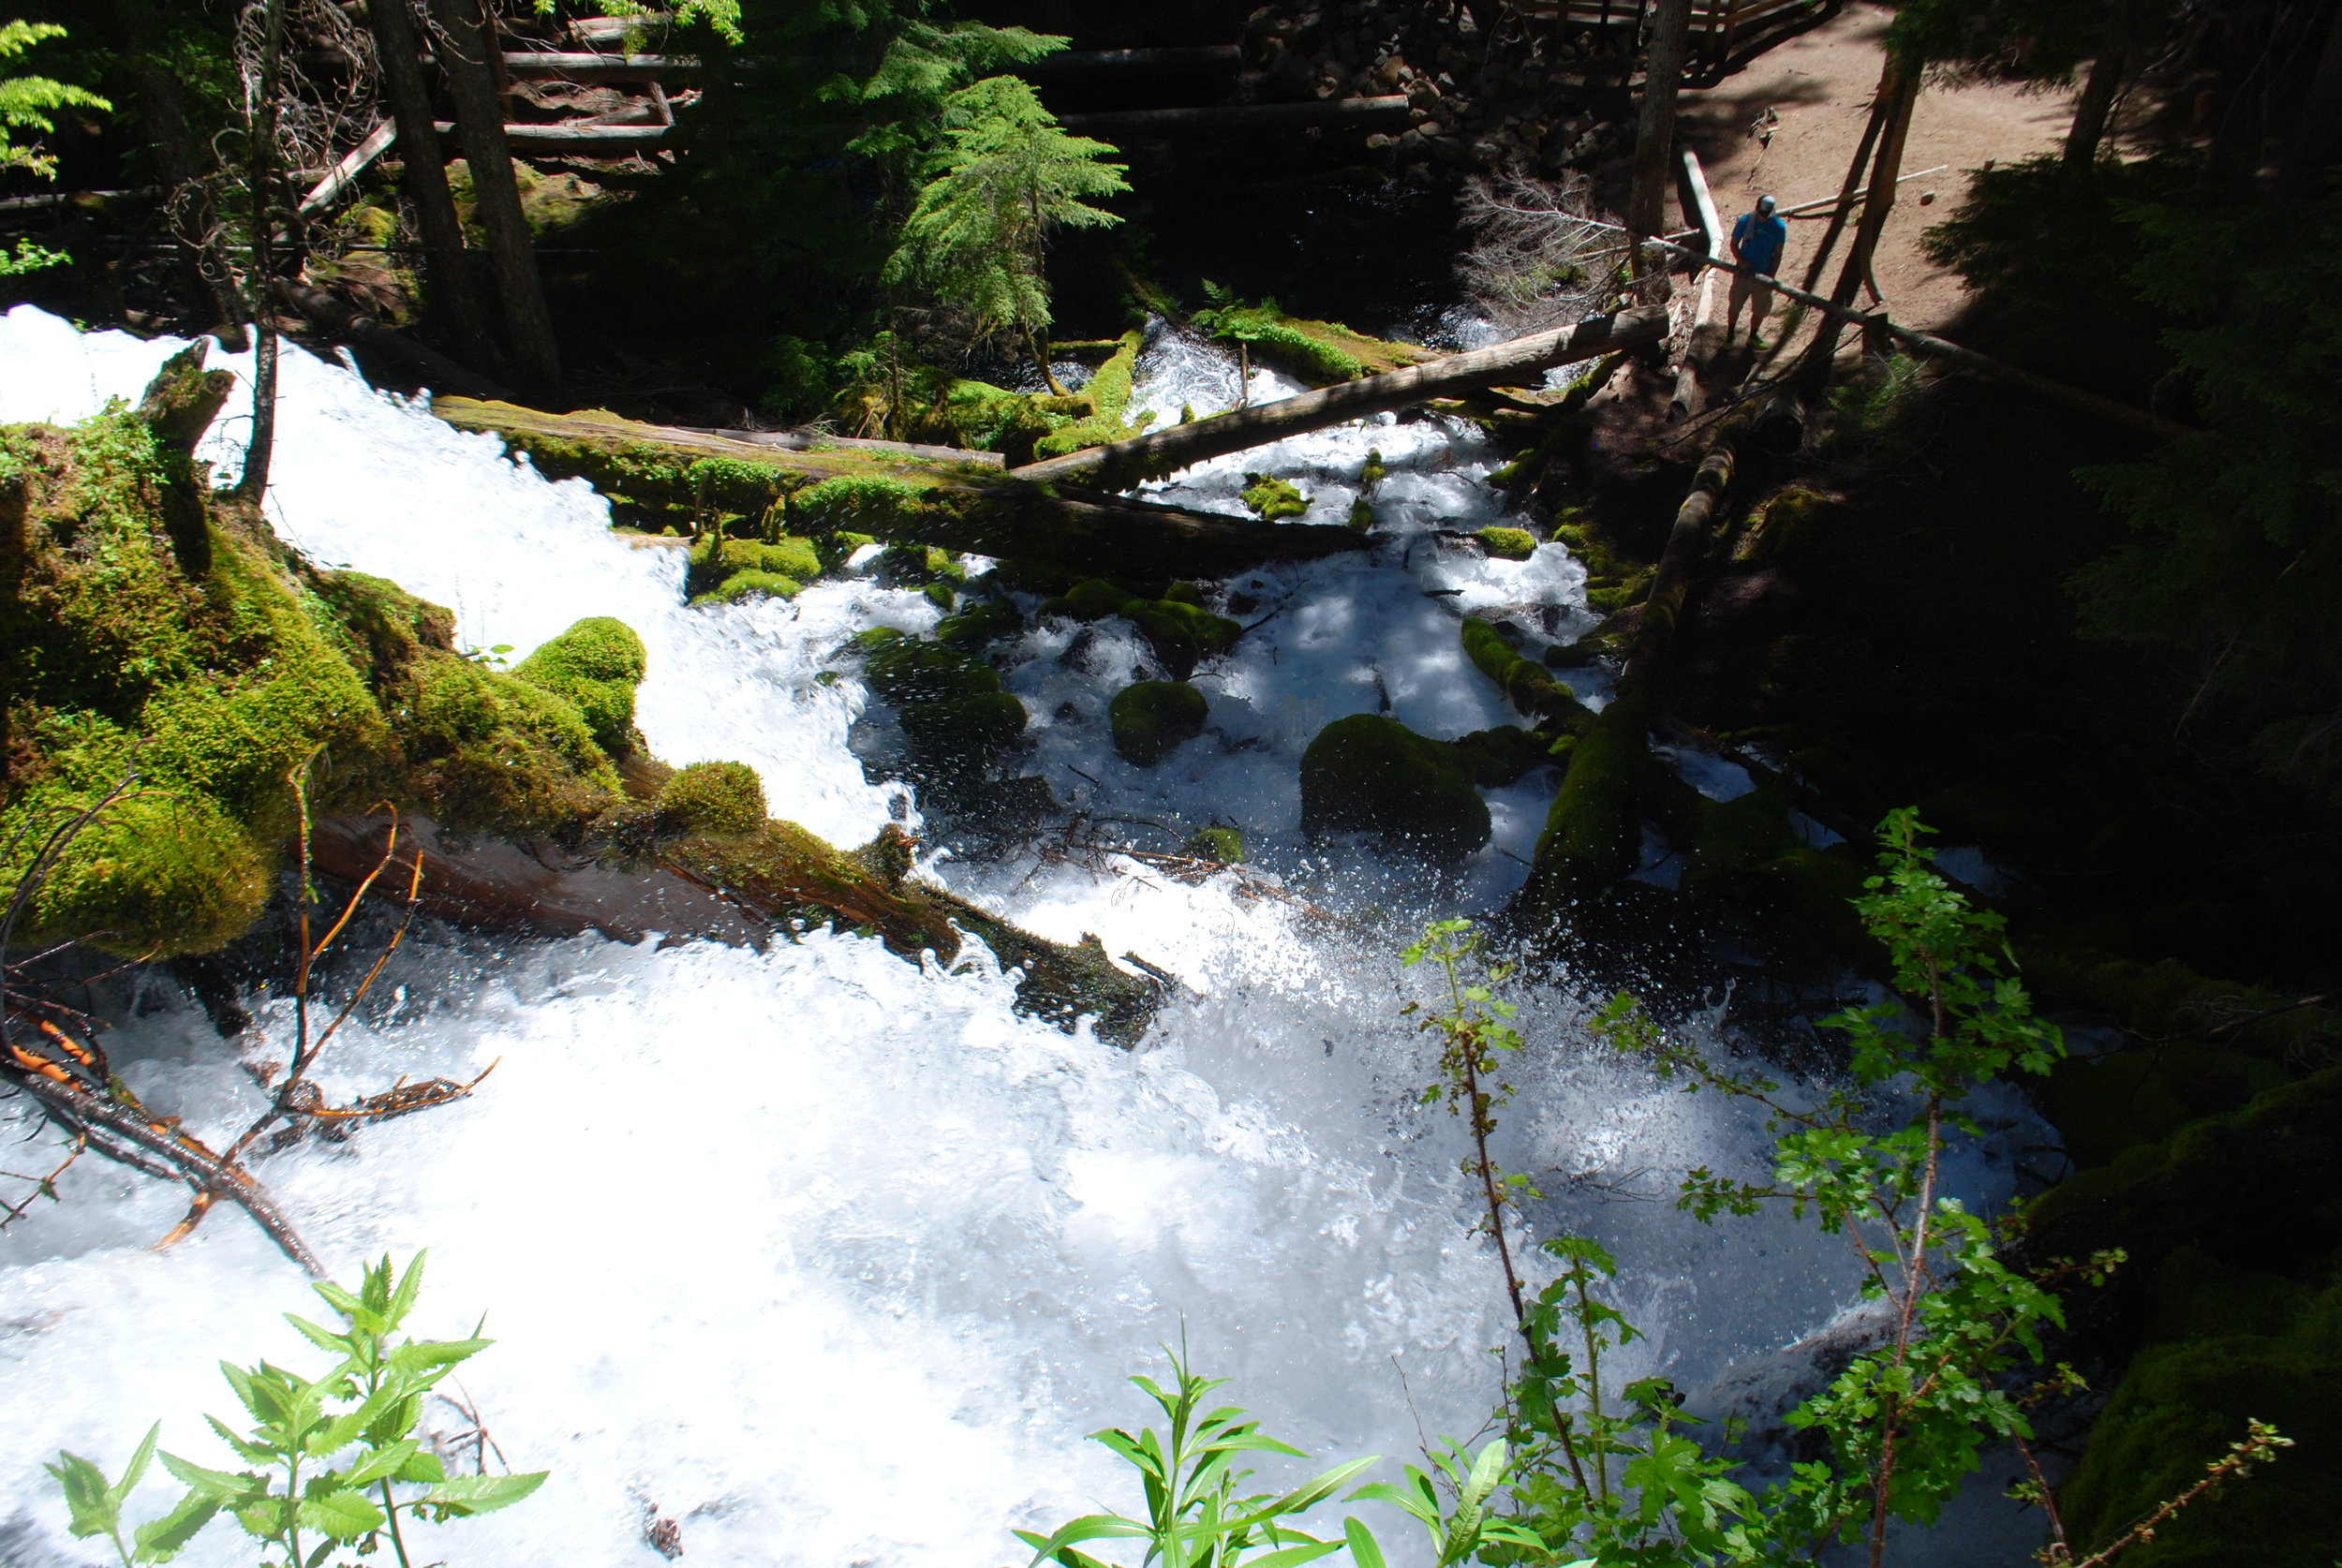 FOUR WATERFALLS, ONE DAY - HIKING ADVENTURES WITH KIDS - What to do in Southern Oregon - Things to do - Douglas County - Clearwater Fall